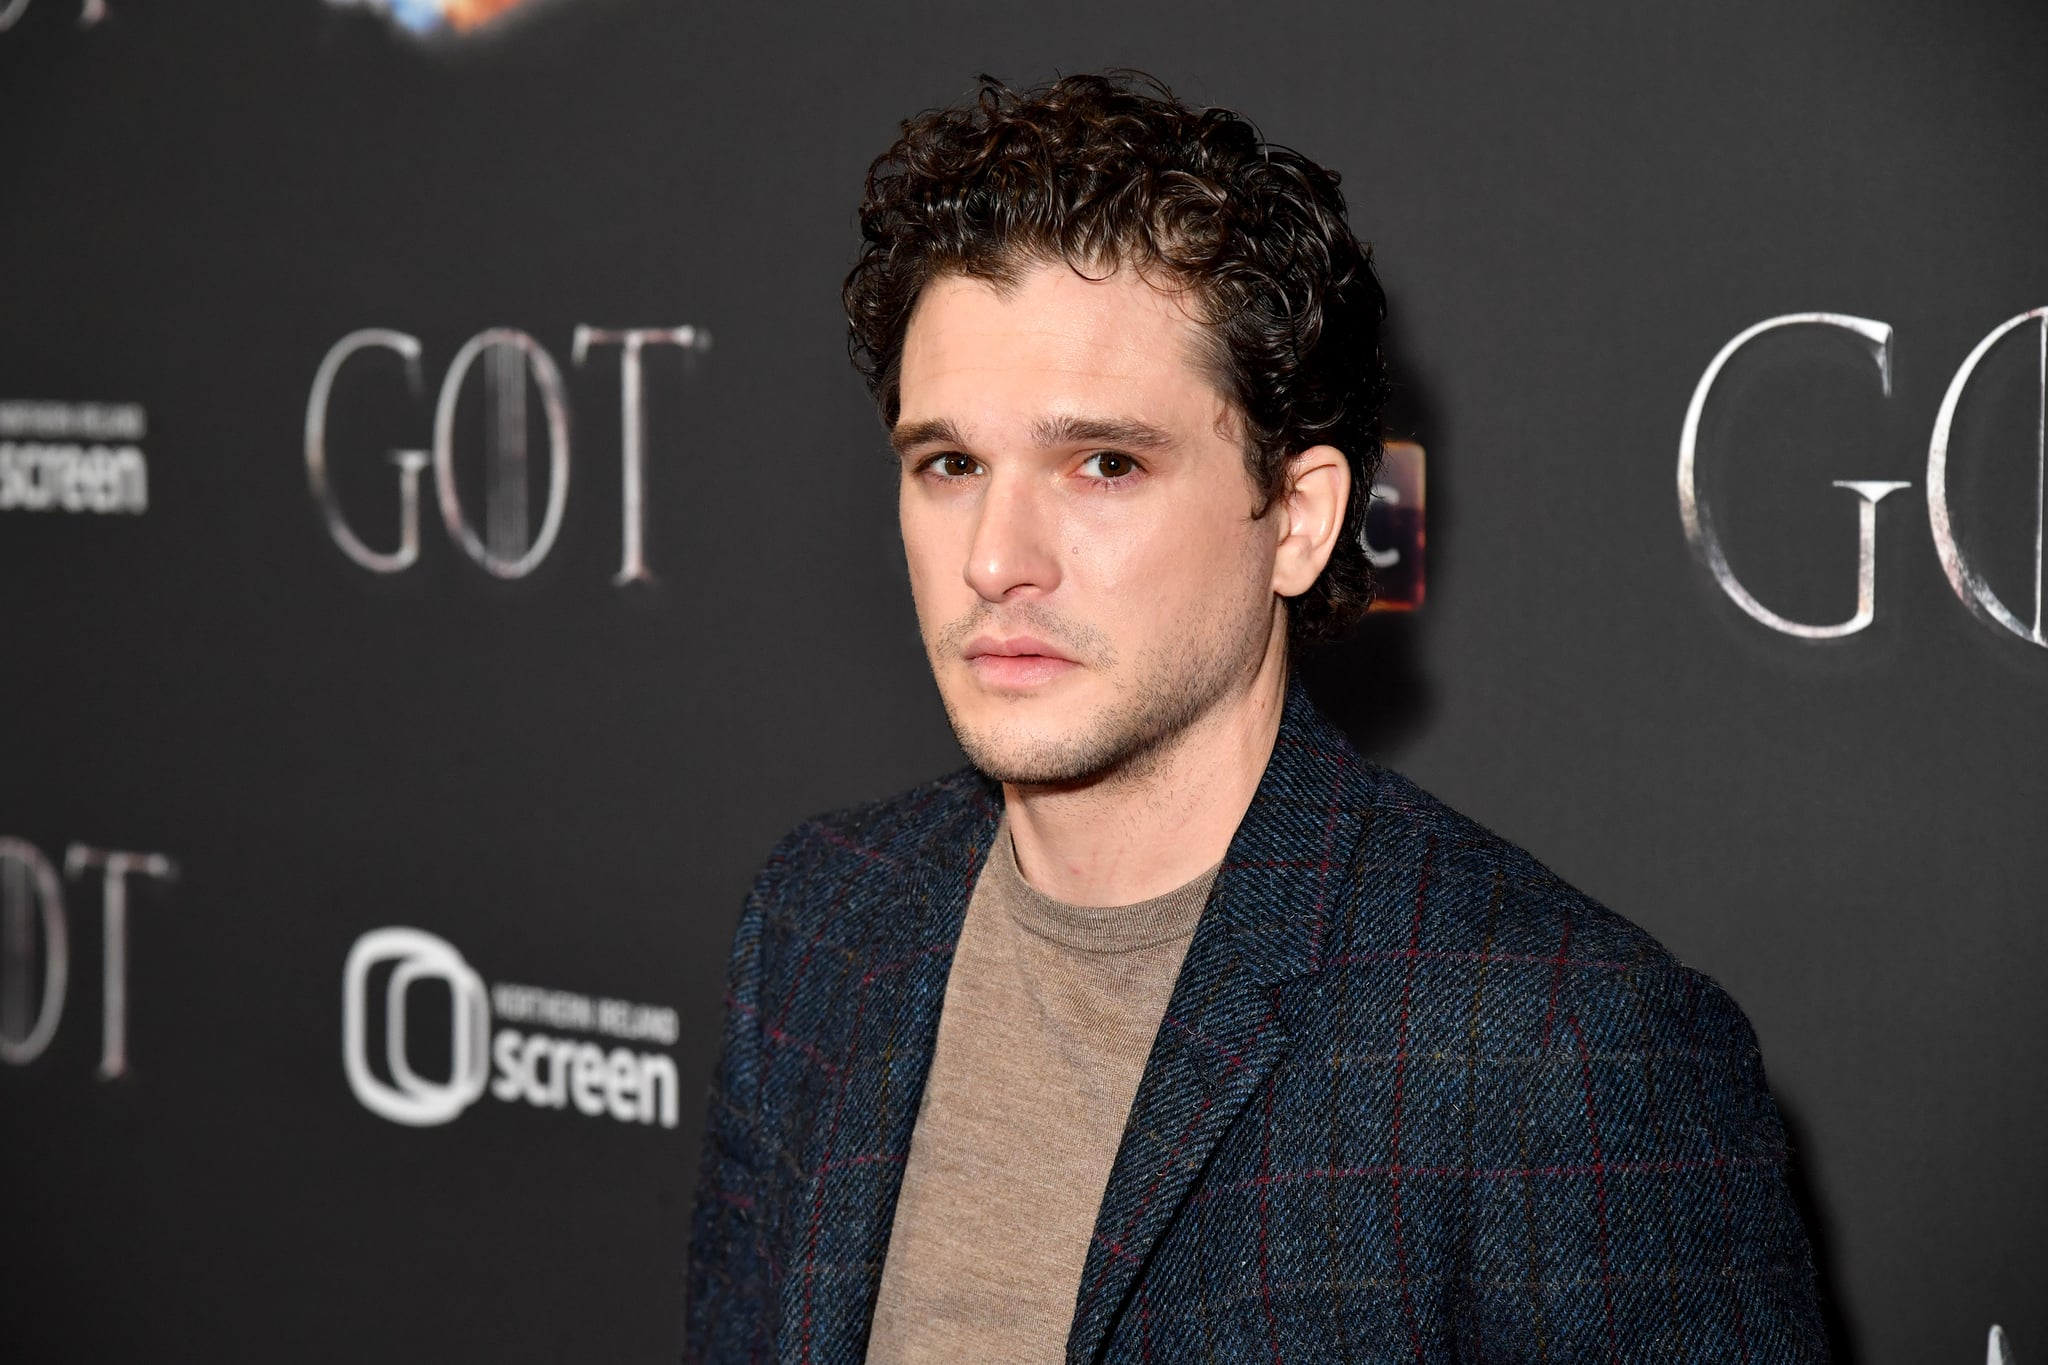 BELFAST, NORTHERN IRELAND - APRIL 12: Kit Harrington arrives at the Game of Thrones Season Finale Premiere at the Waterfront Hall on April 12, 2019 in Belfast, UK (Photo by Jeff Kravitz/FilmMagic for HBO)